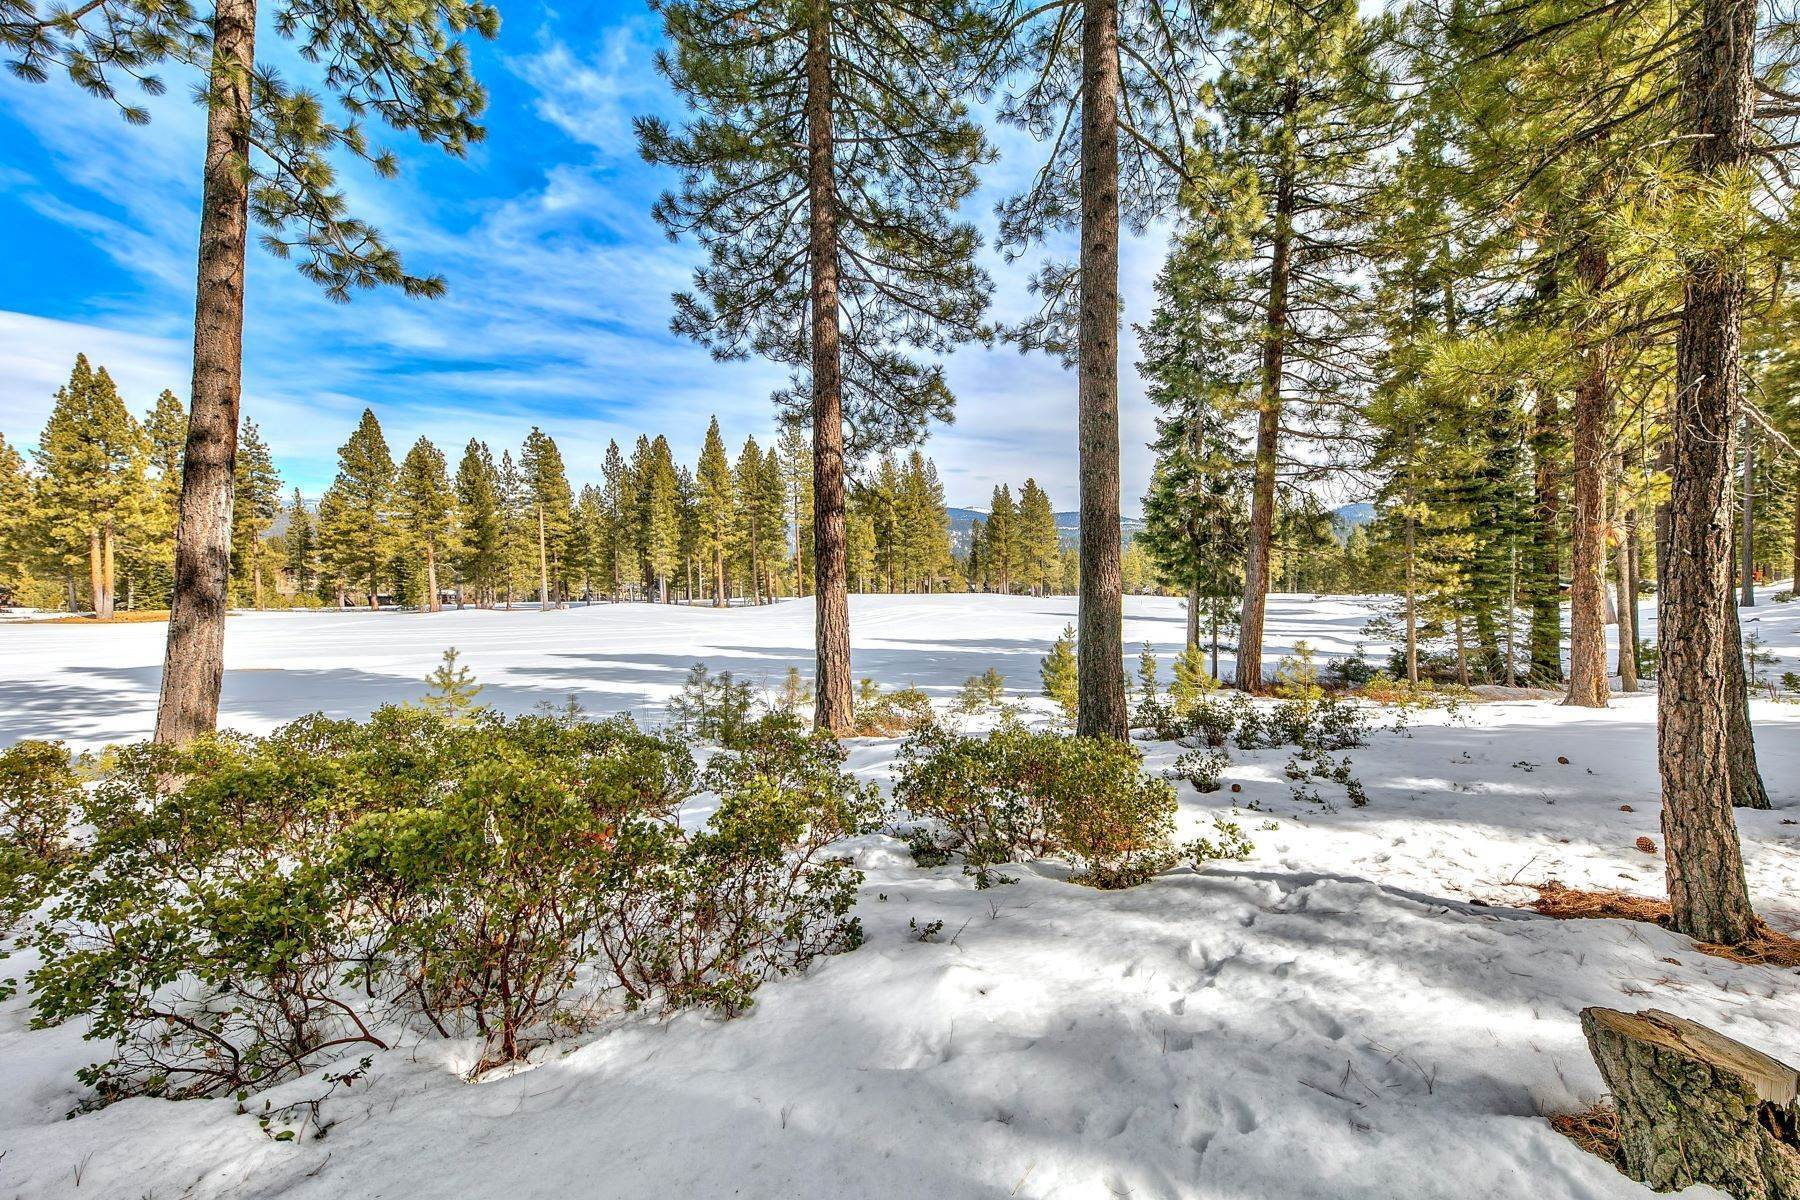 Terreno por un Venta en Lahontan Golf Course Lot 12365 Garwood Dean Truckee, California 96161 Estados Unidos